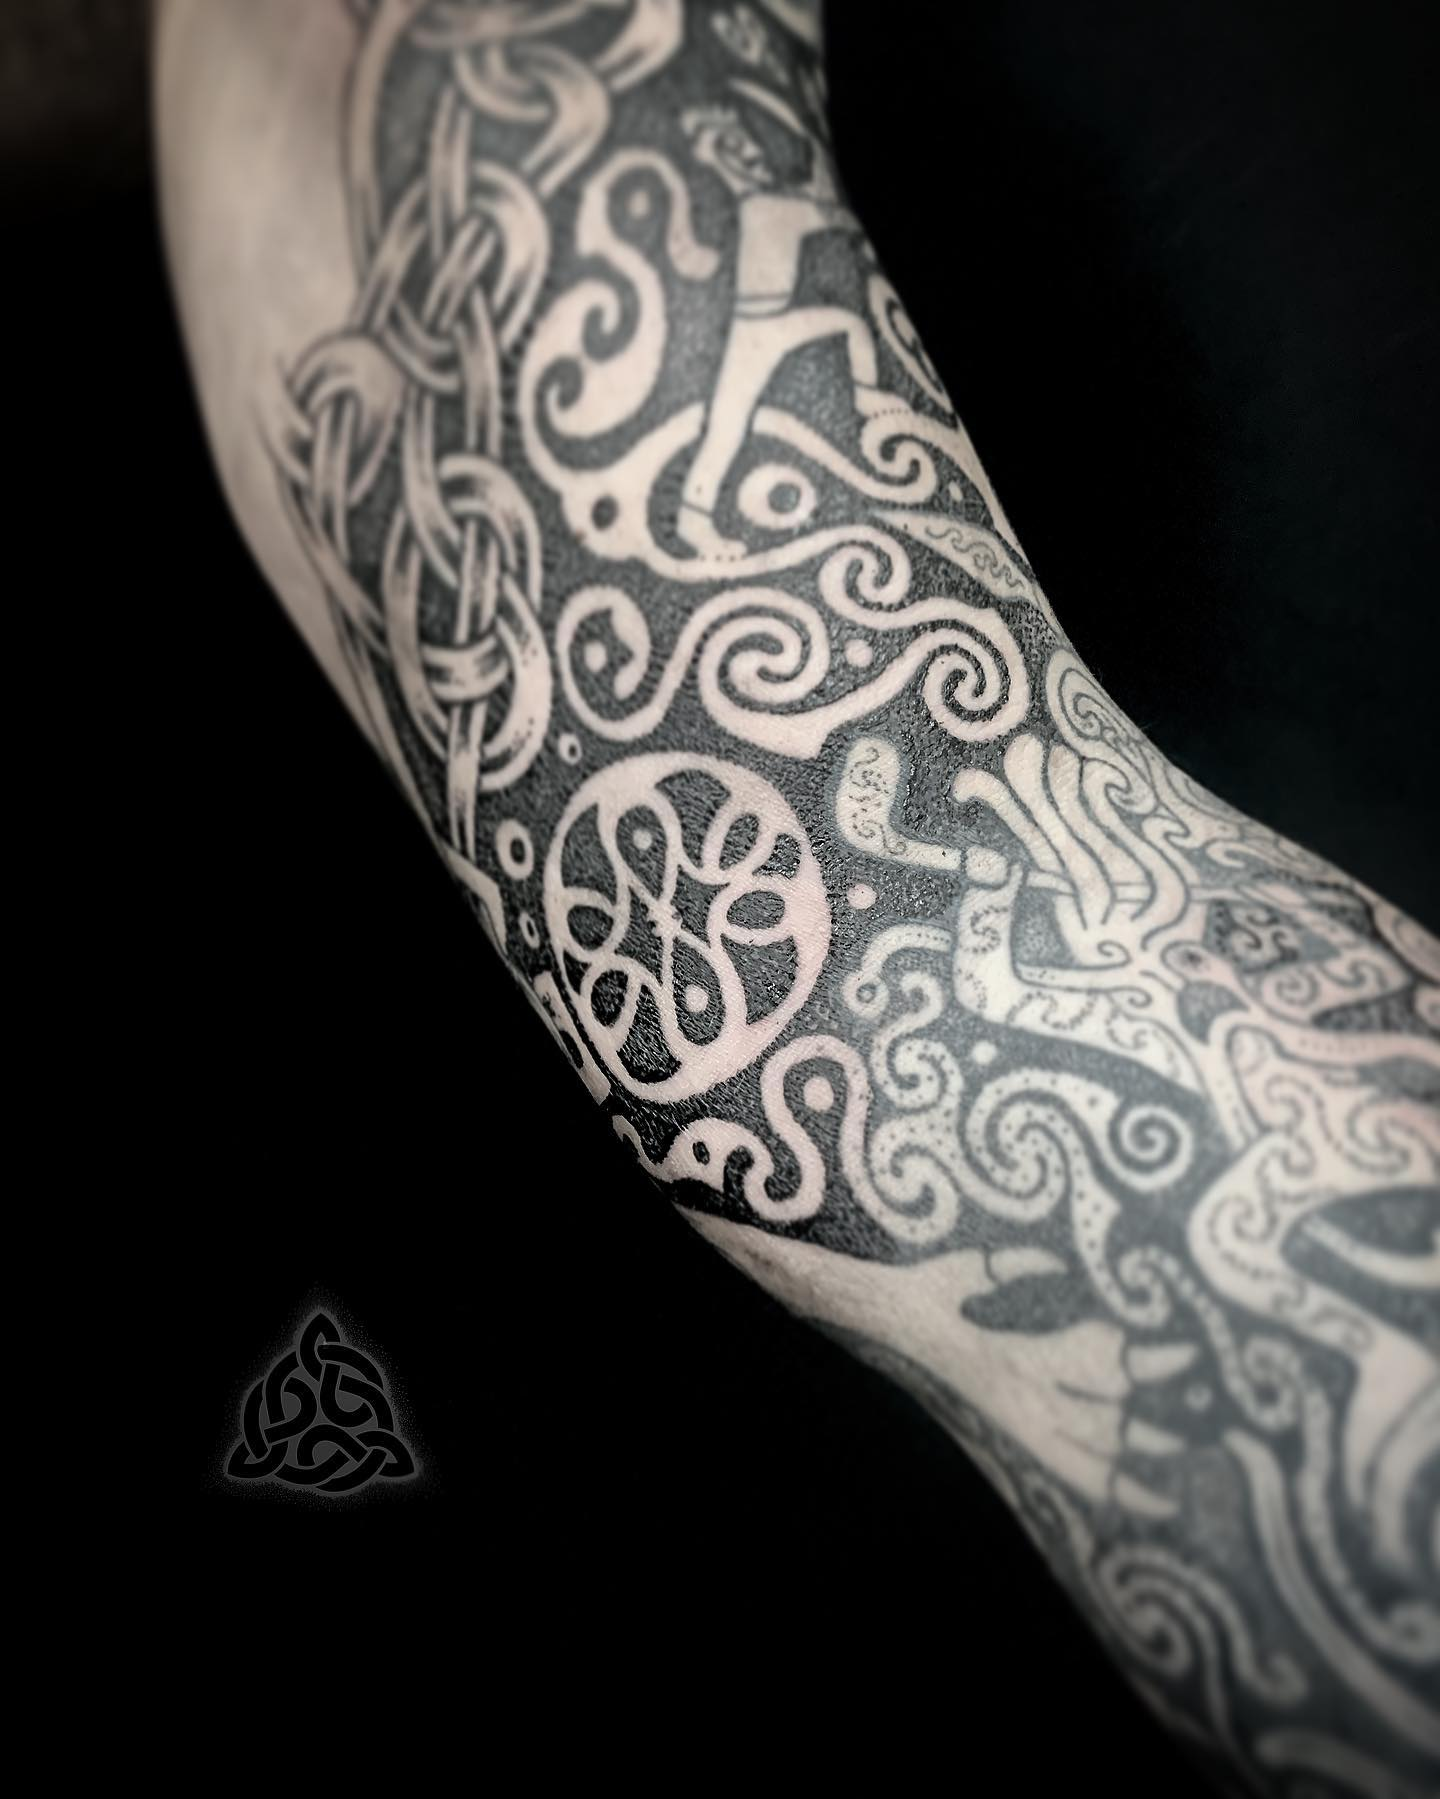 Celtic tattoo by Sean parry of sacred knot, ulster cycle